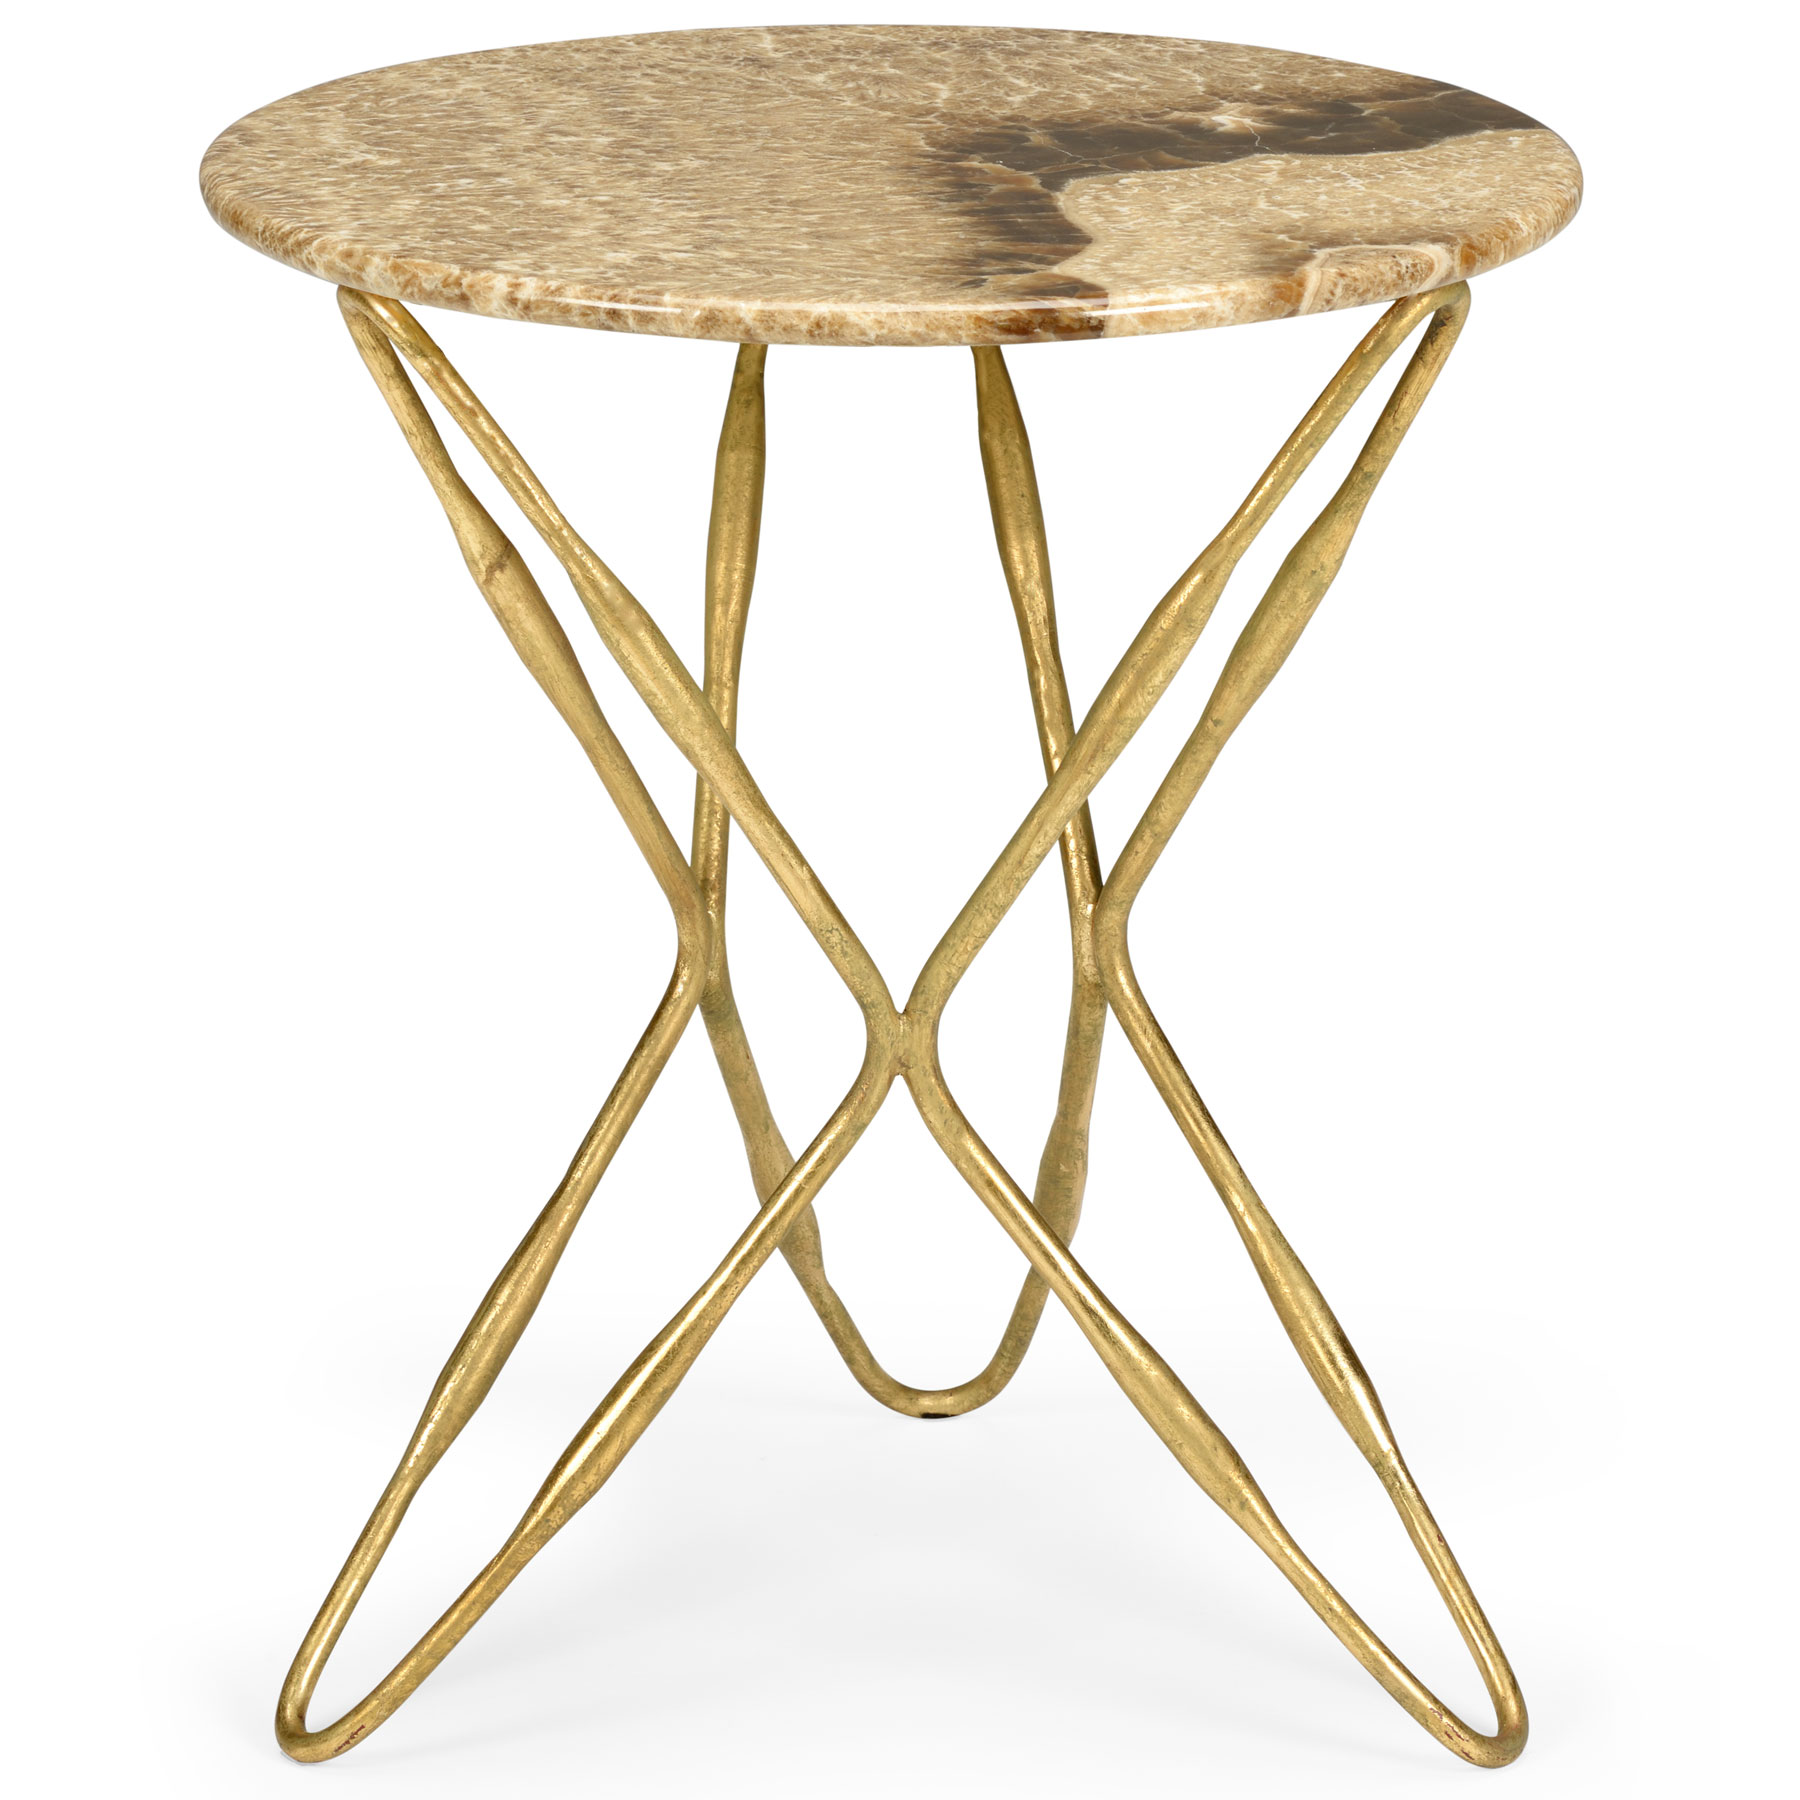 marble top accent table dandelion spell round antique gold leaf base with natural cream and brown tones nautical lights industrial look end tables cool coffee foot patio umbrella